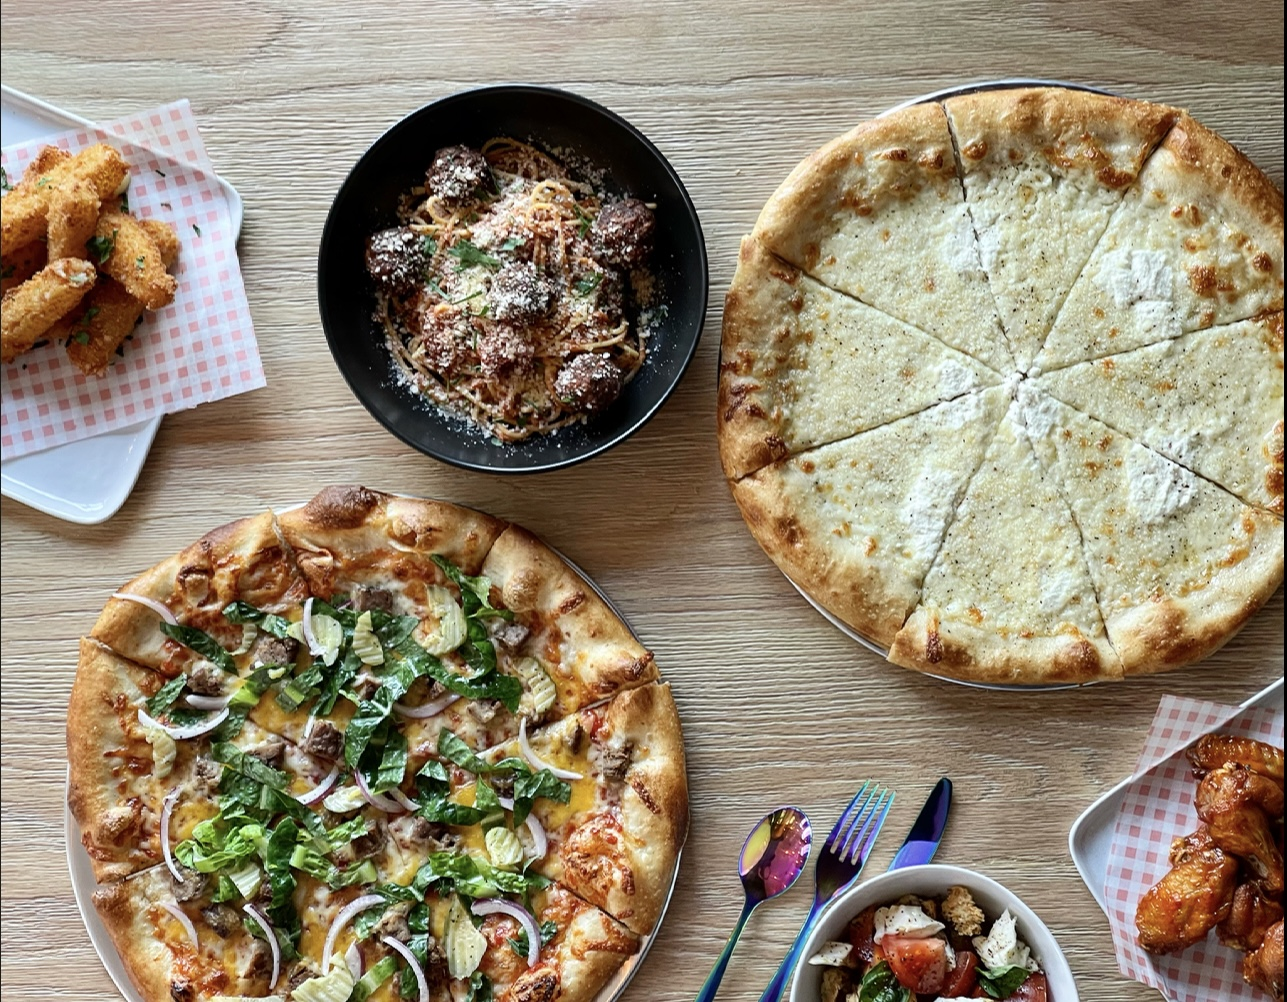 Wings, pizza with greens, meatballs, and a sliced cheese pizza on a wooden table